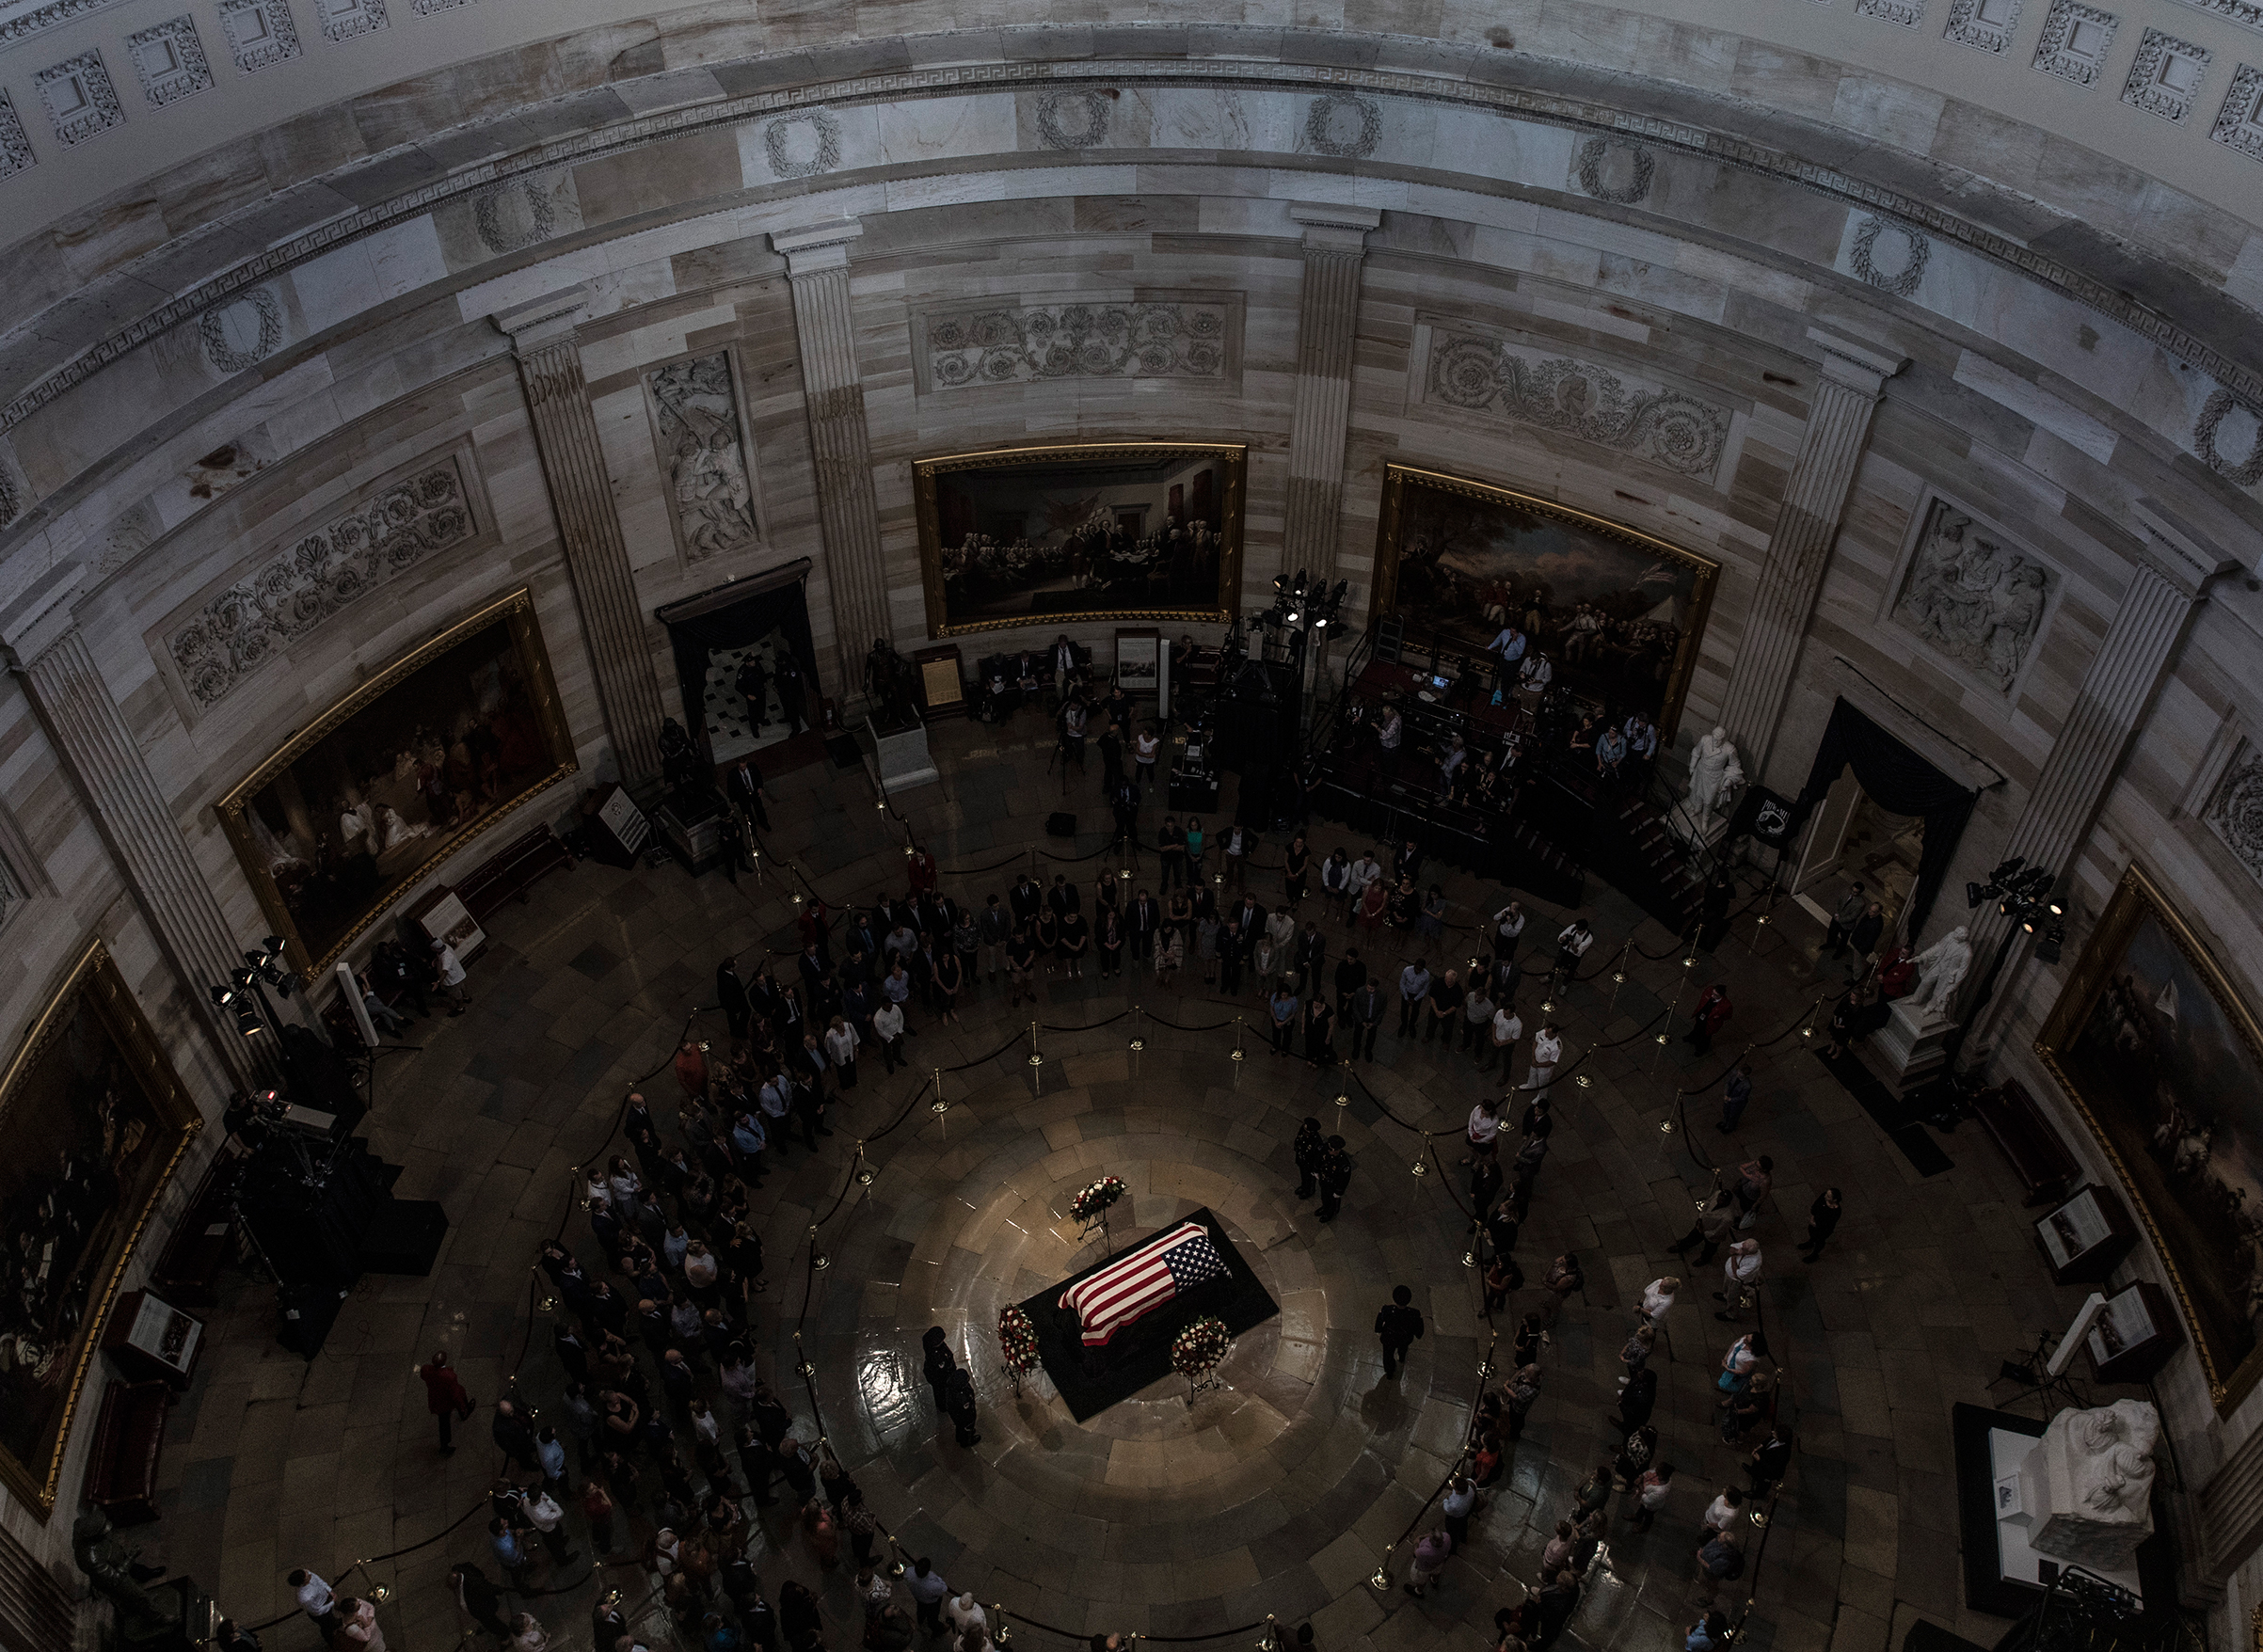 The casket of Sen. John McCain arrived inside the Rotunda of the U.S. Capitol, Aug. 31, 2018 in Washington, DC. McCain died Aug. 25 at age 81 after a long battle with brain cancer. His body laid in state at the U.S. Capitol on Friday, a rare honor bestowed on only 31 people in the past 166 years.